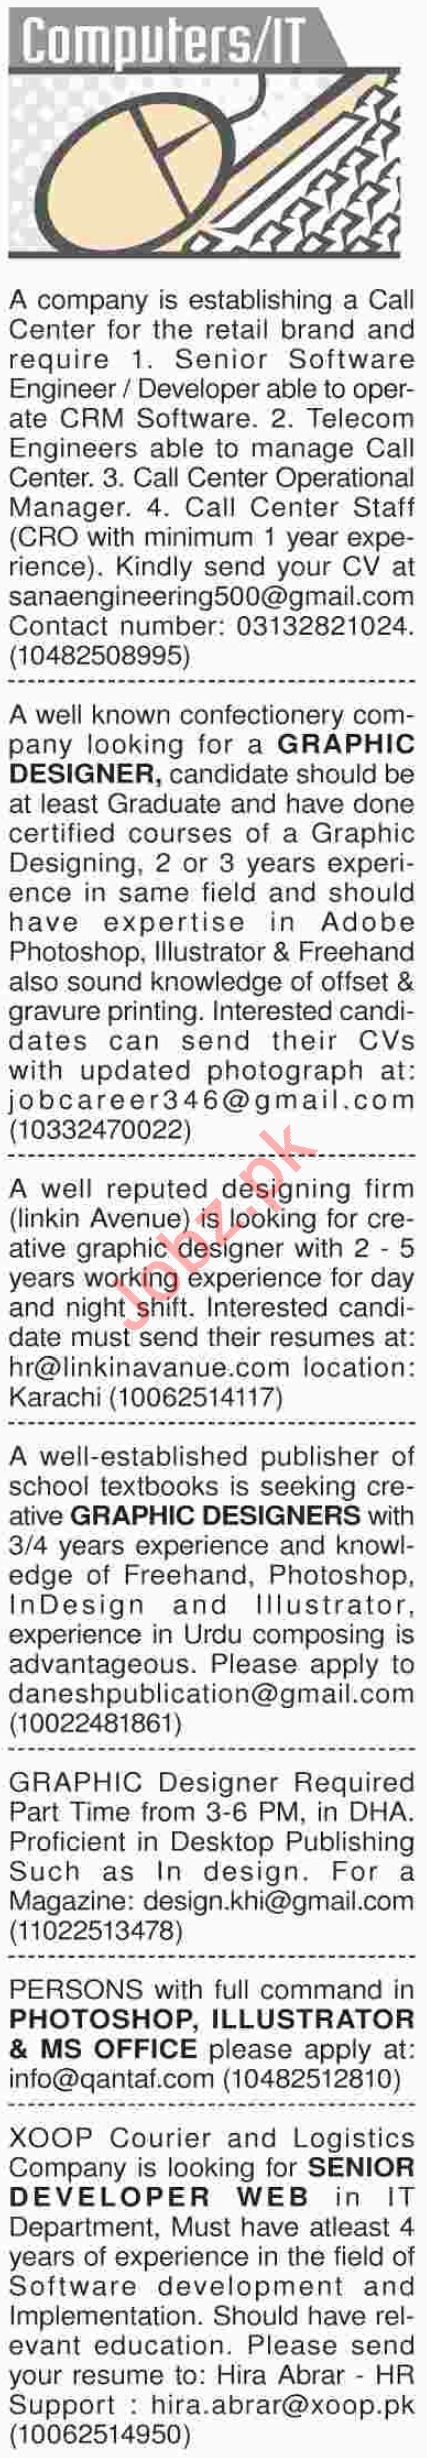 Dawn Sunday Computer / IT Classified Ads 25/11/2018